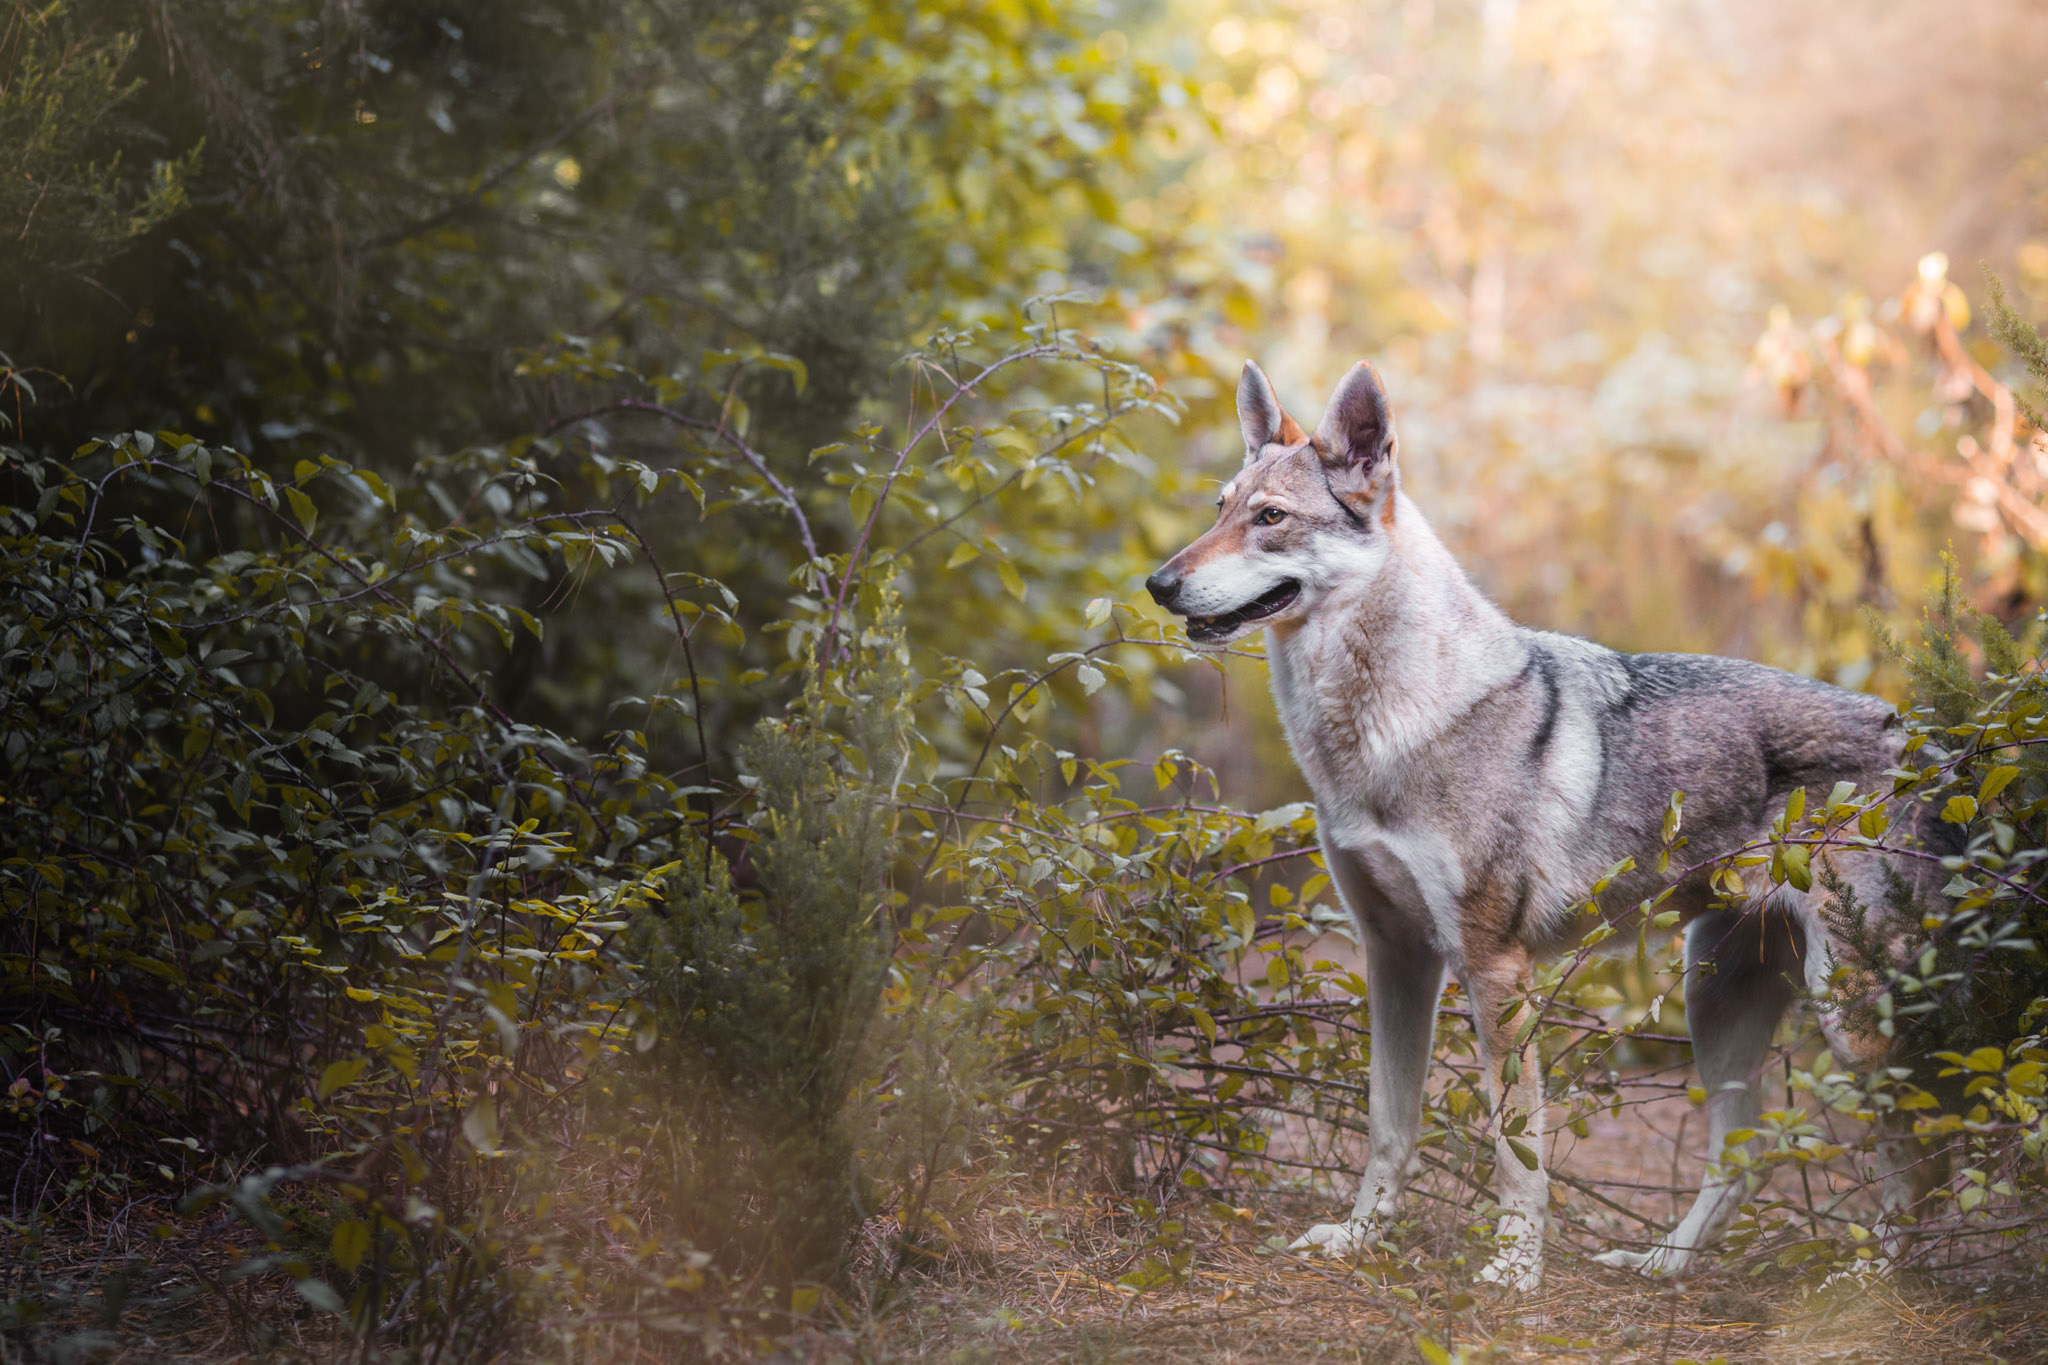 czechoslovakian-wolfdog-tenerife-the-northdogs-14